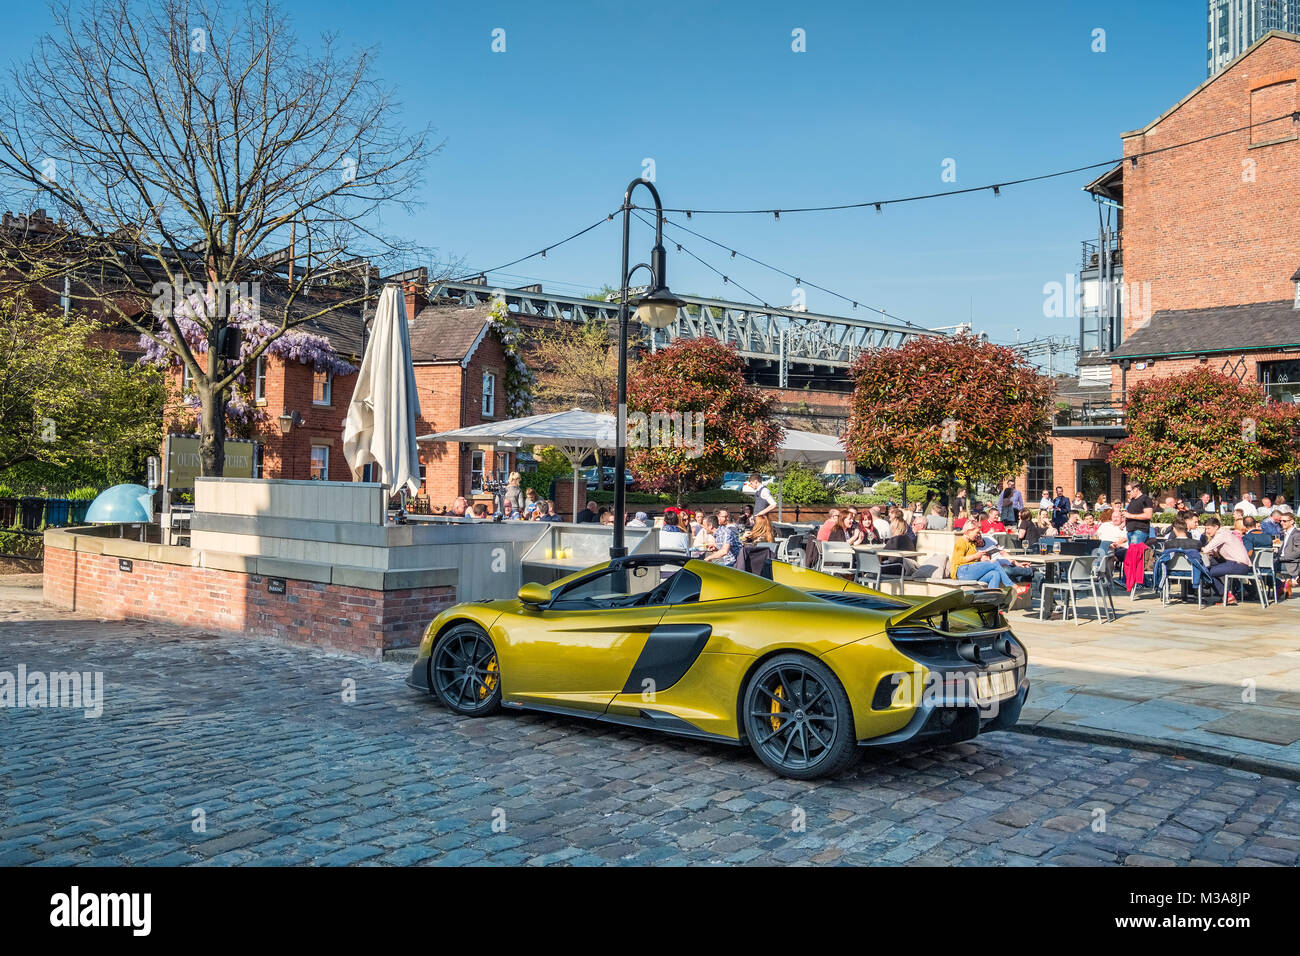 McLaren Sports Car parked outside Alberts Shed Bar and Restaurant, Castlefield, Manchester, Greater Manchester, - Stock Image